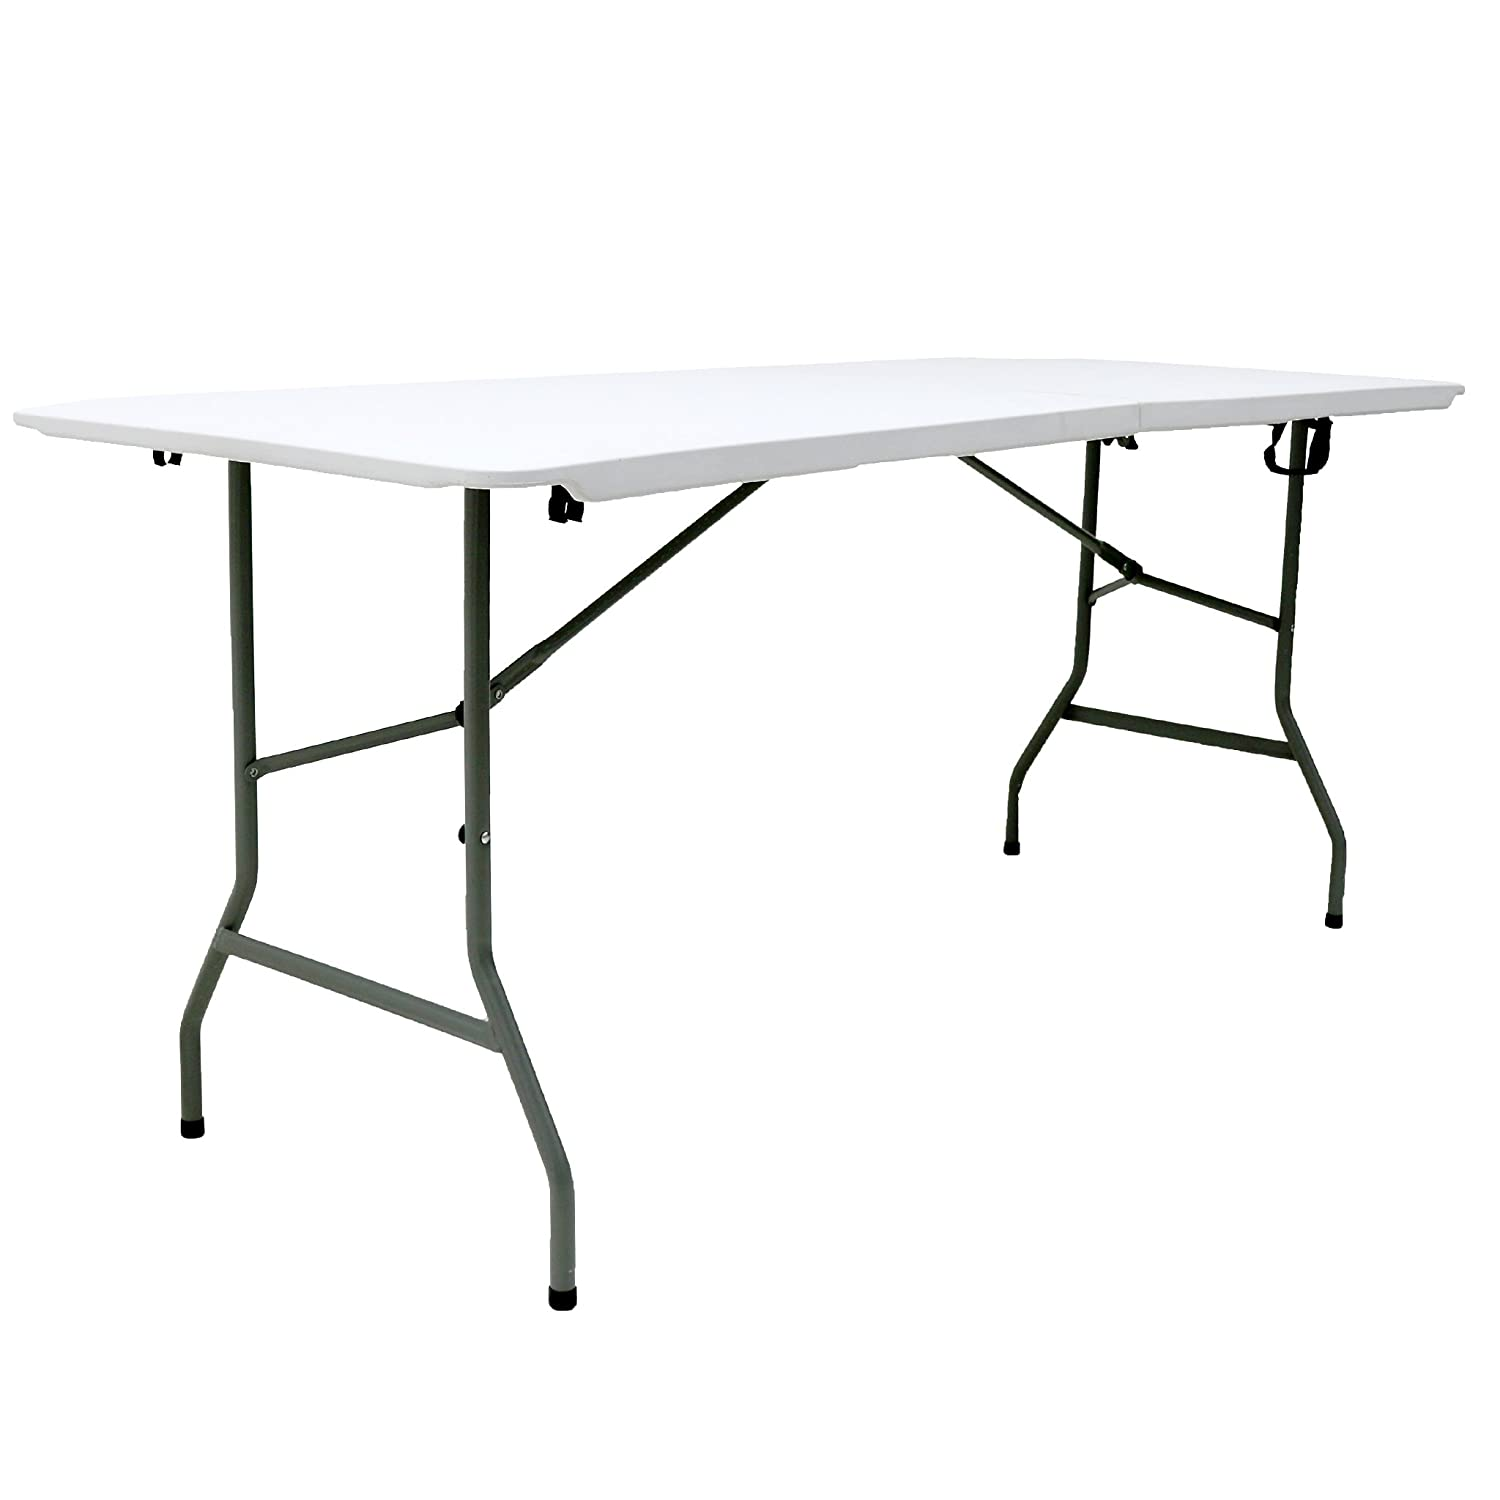 Oypla 6ft 1.8m Folding Heavy Duty Catering Trestle Party Garden Table